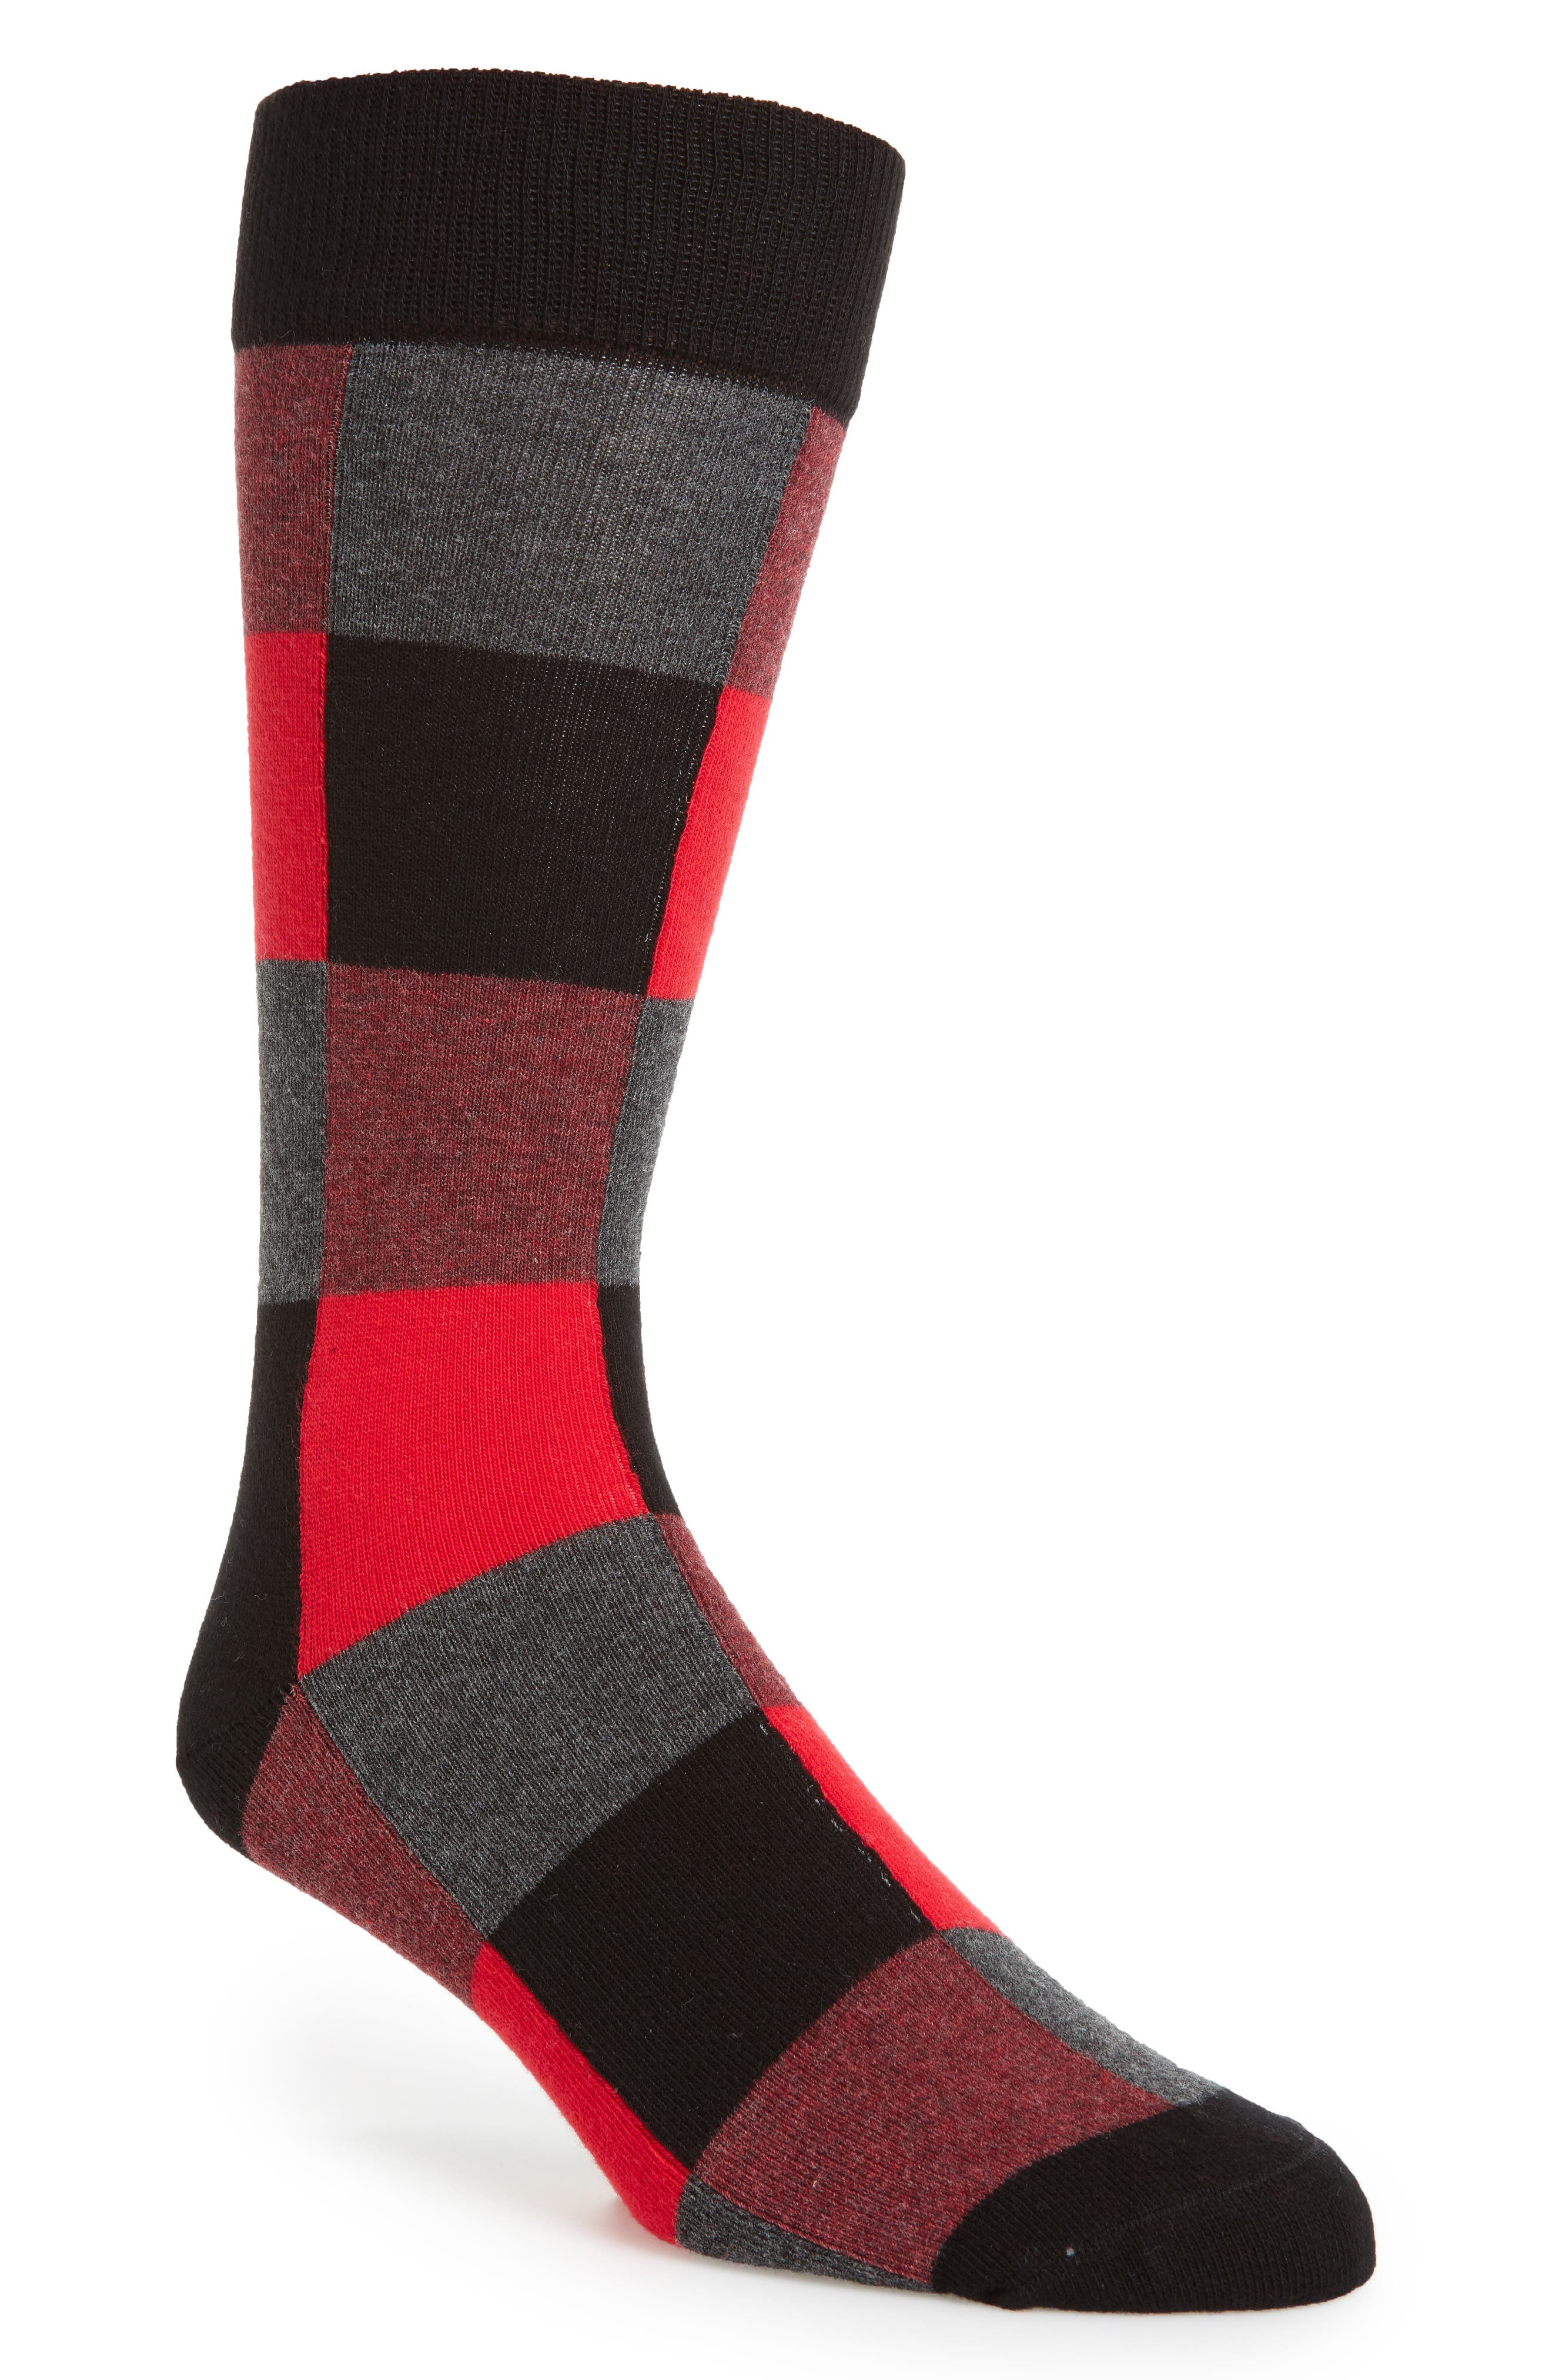 Alternate Image 1 Selected - Happy Socks Check Socks (3 for $30)